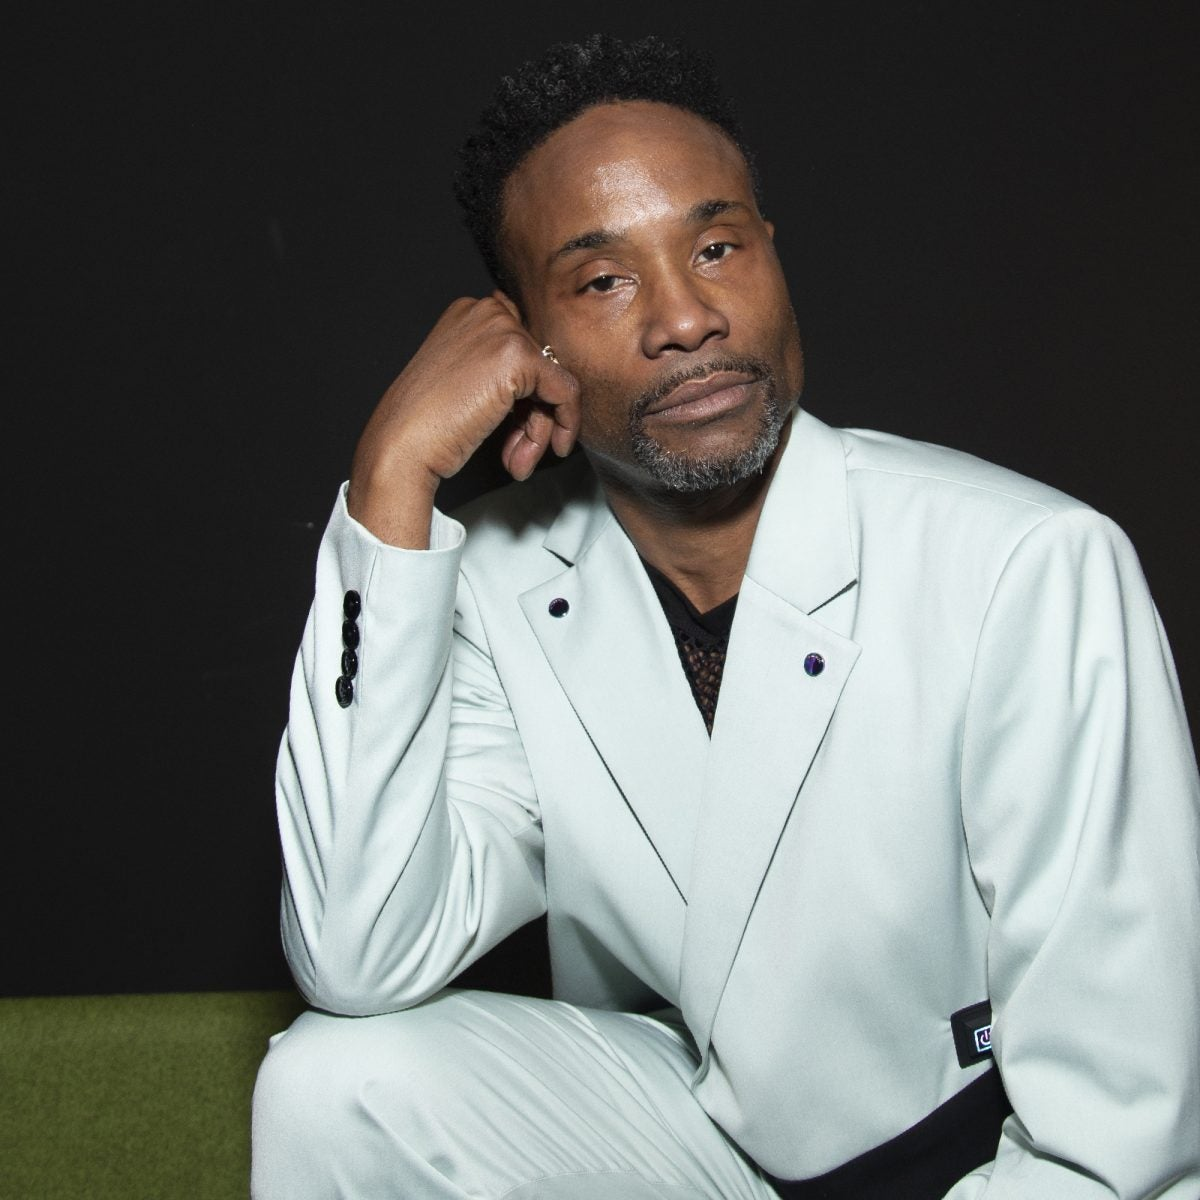 'The Truth Is Healing': Billy Porter Reveals He Was Diagnosed With HIV 14 Years Ago